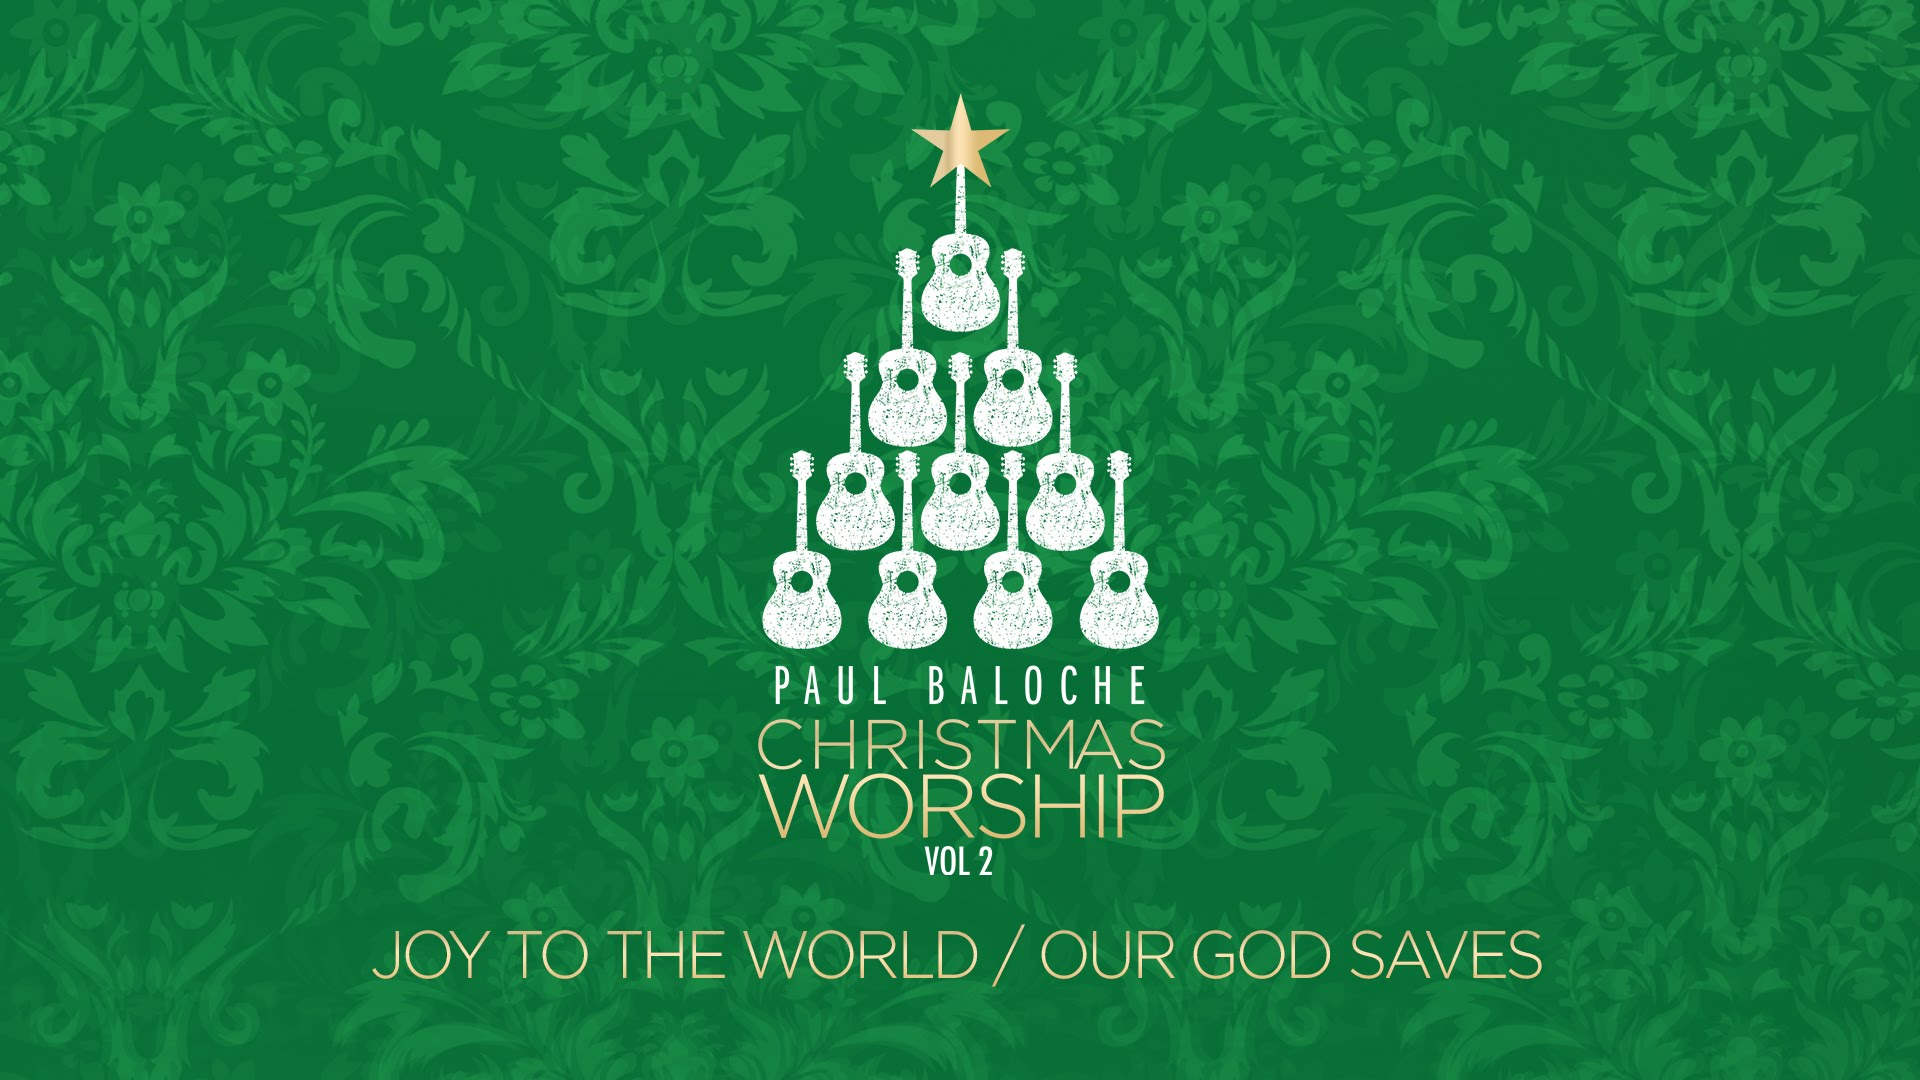 Joy To The World/Our God Saves door Paul Baloche 1